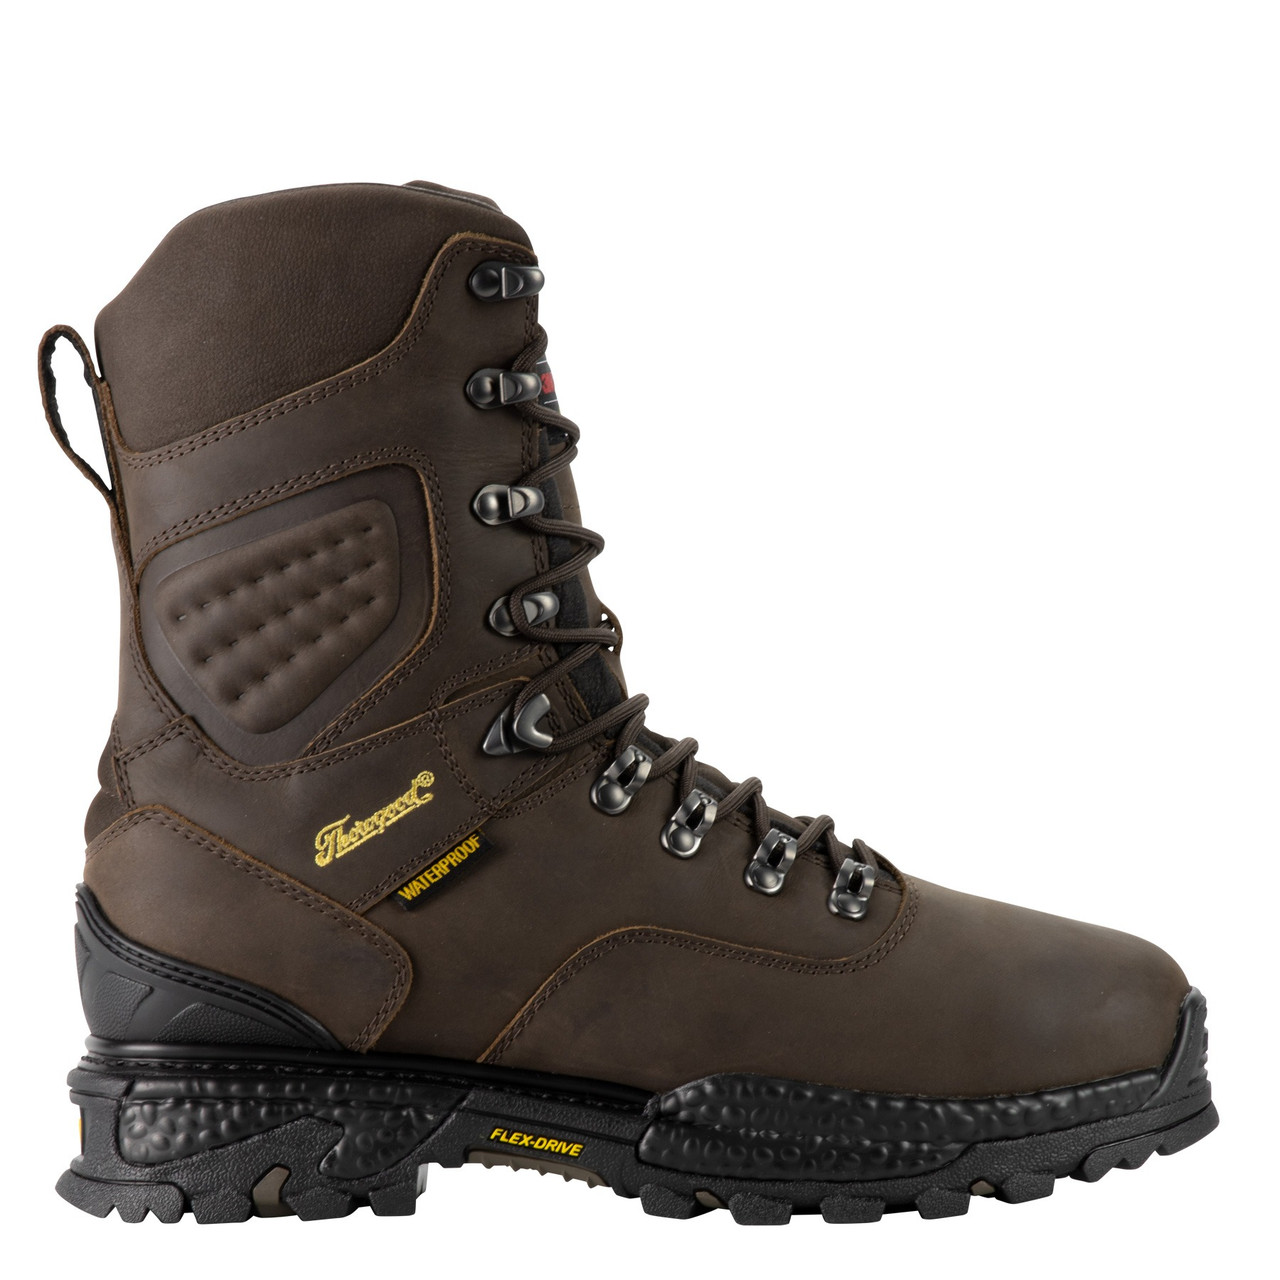 THOROGOOD INFINITY FD SERIES 9″ WATERPROOF 400G INSULATED OUTDOOR BOOTS 864-4089